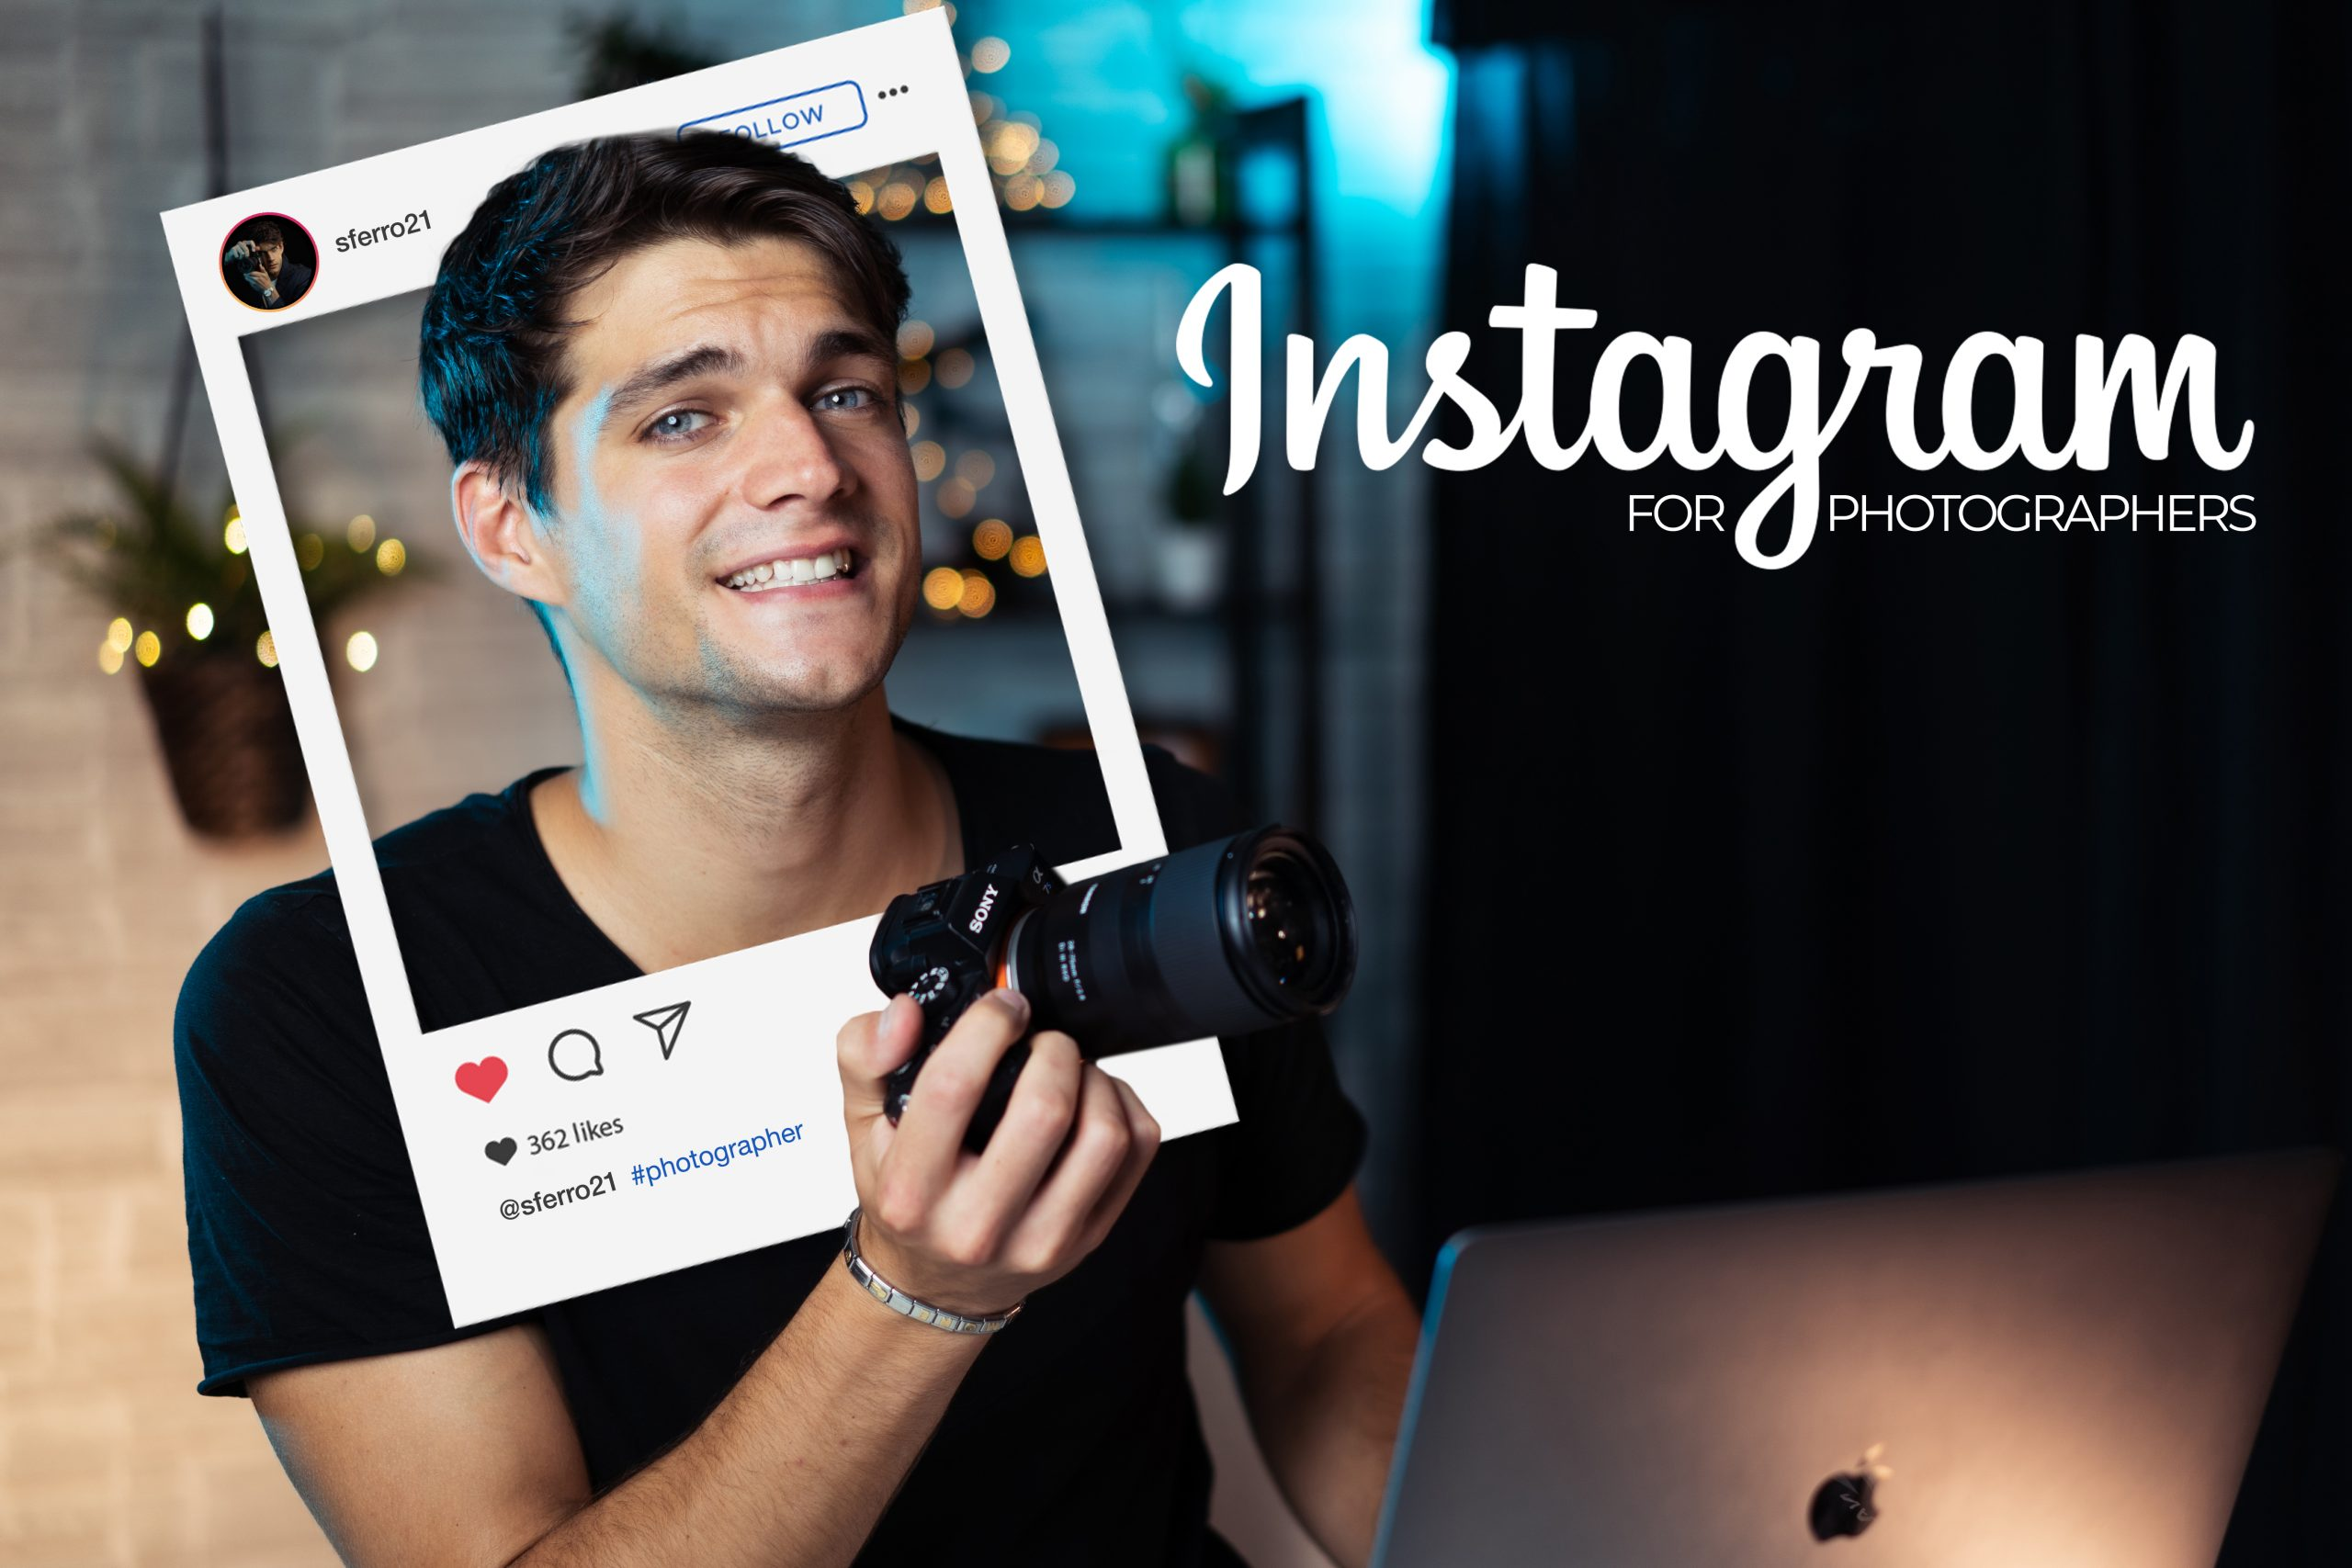 Instagram for Phographers